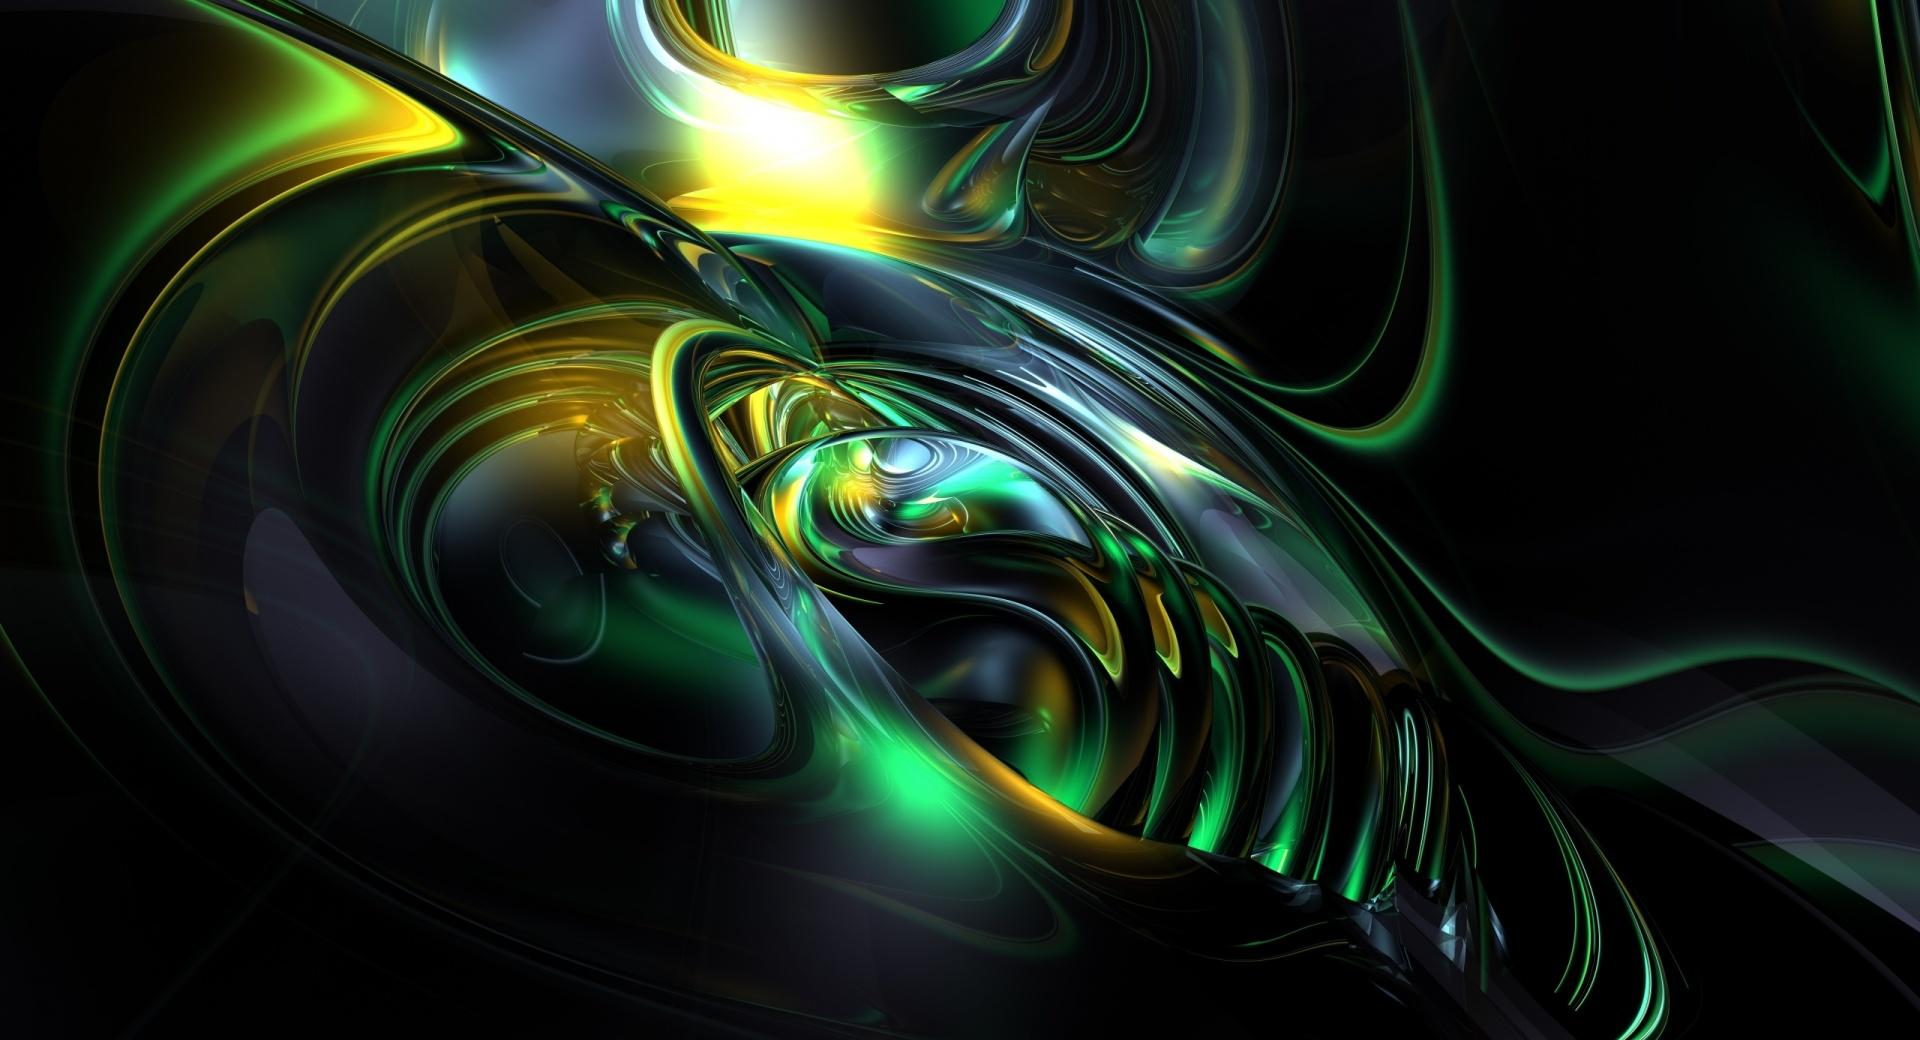 3D Fractal Art wallpapers HD quality